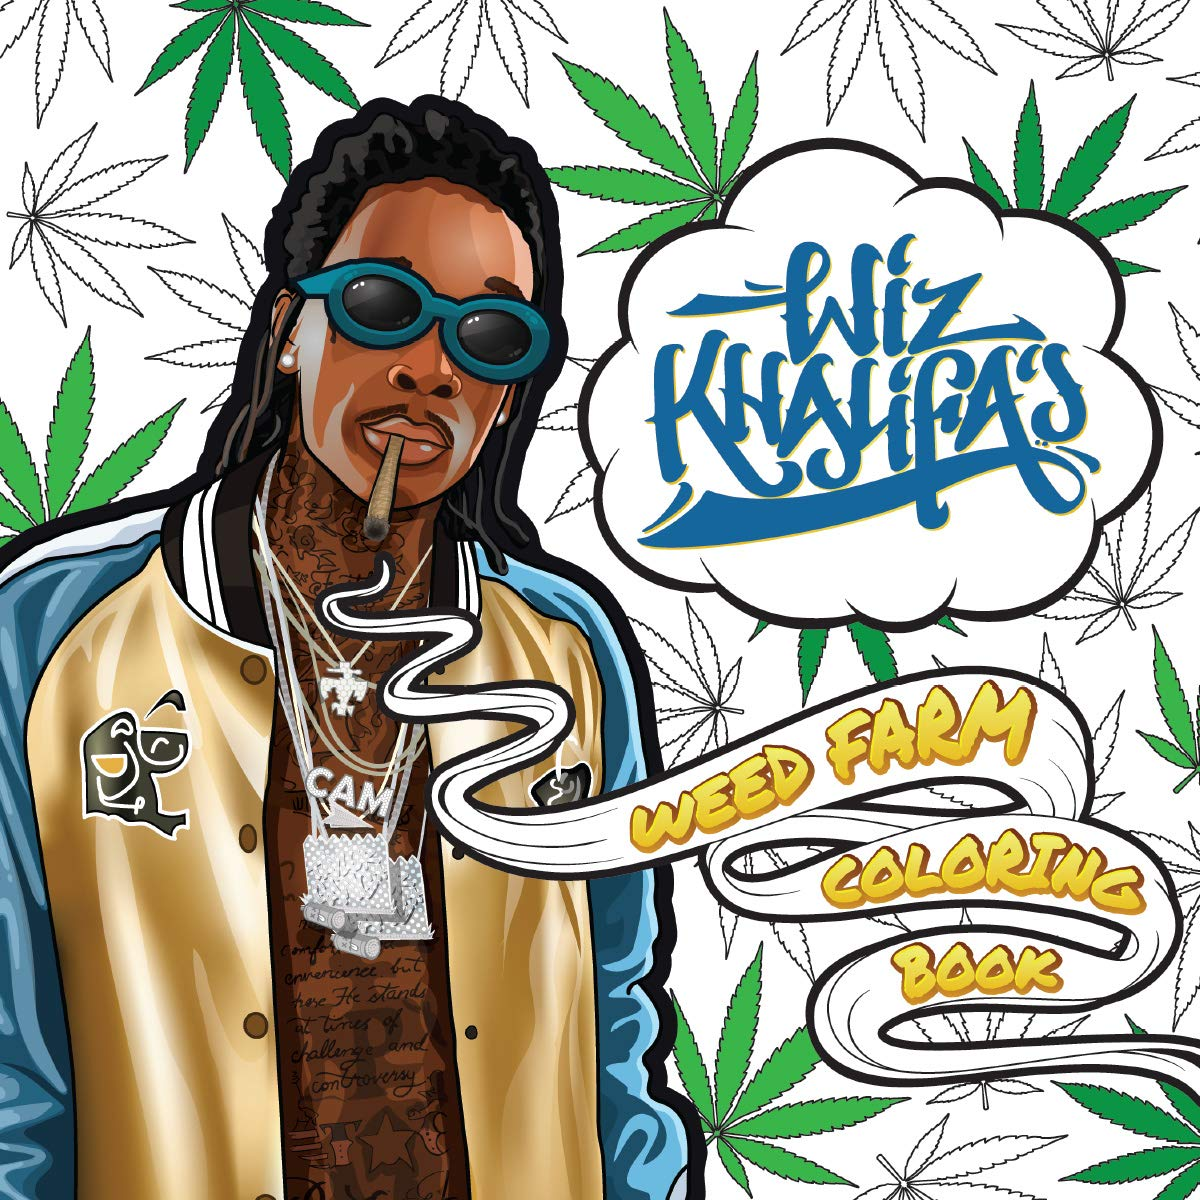 Khalifas Weed Farm Coloring Book product image